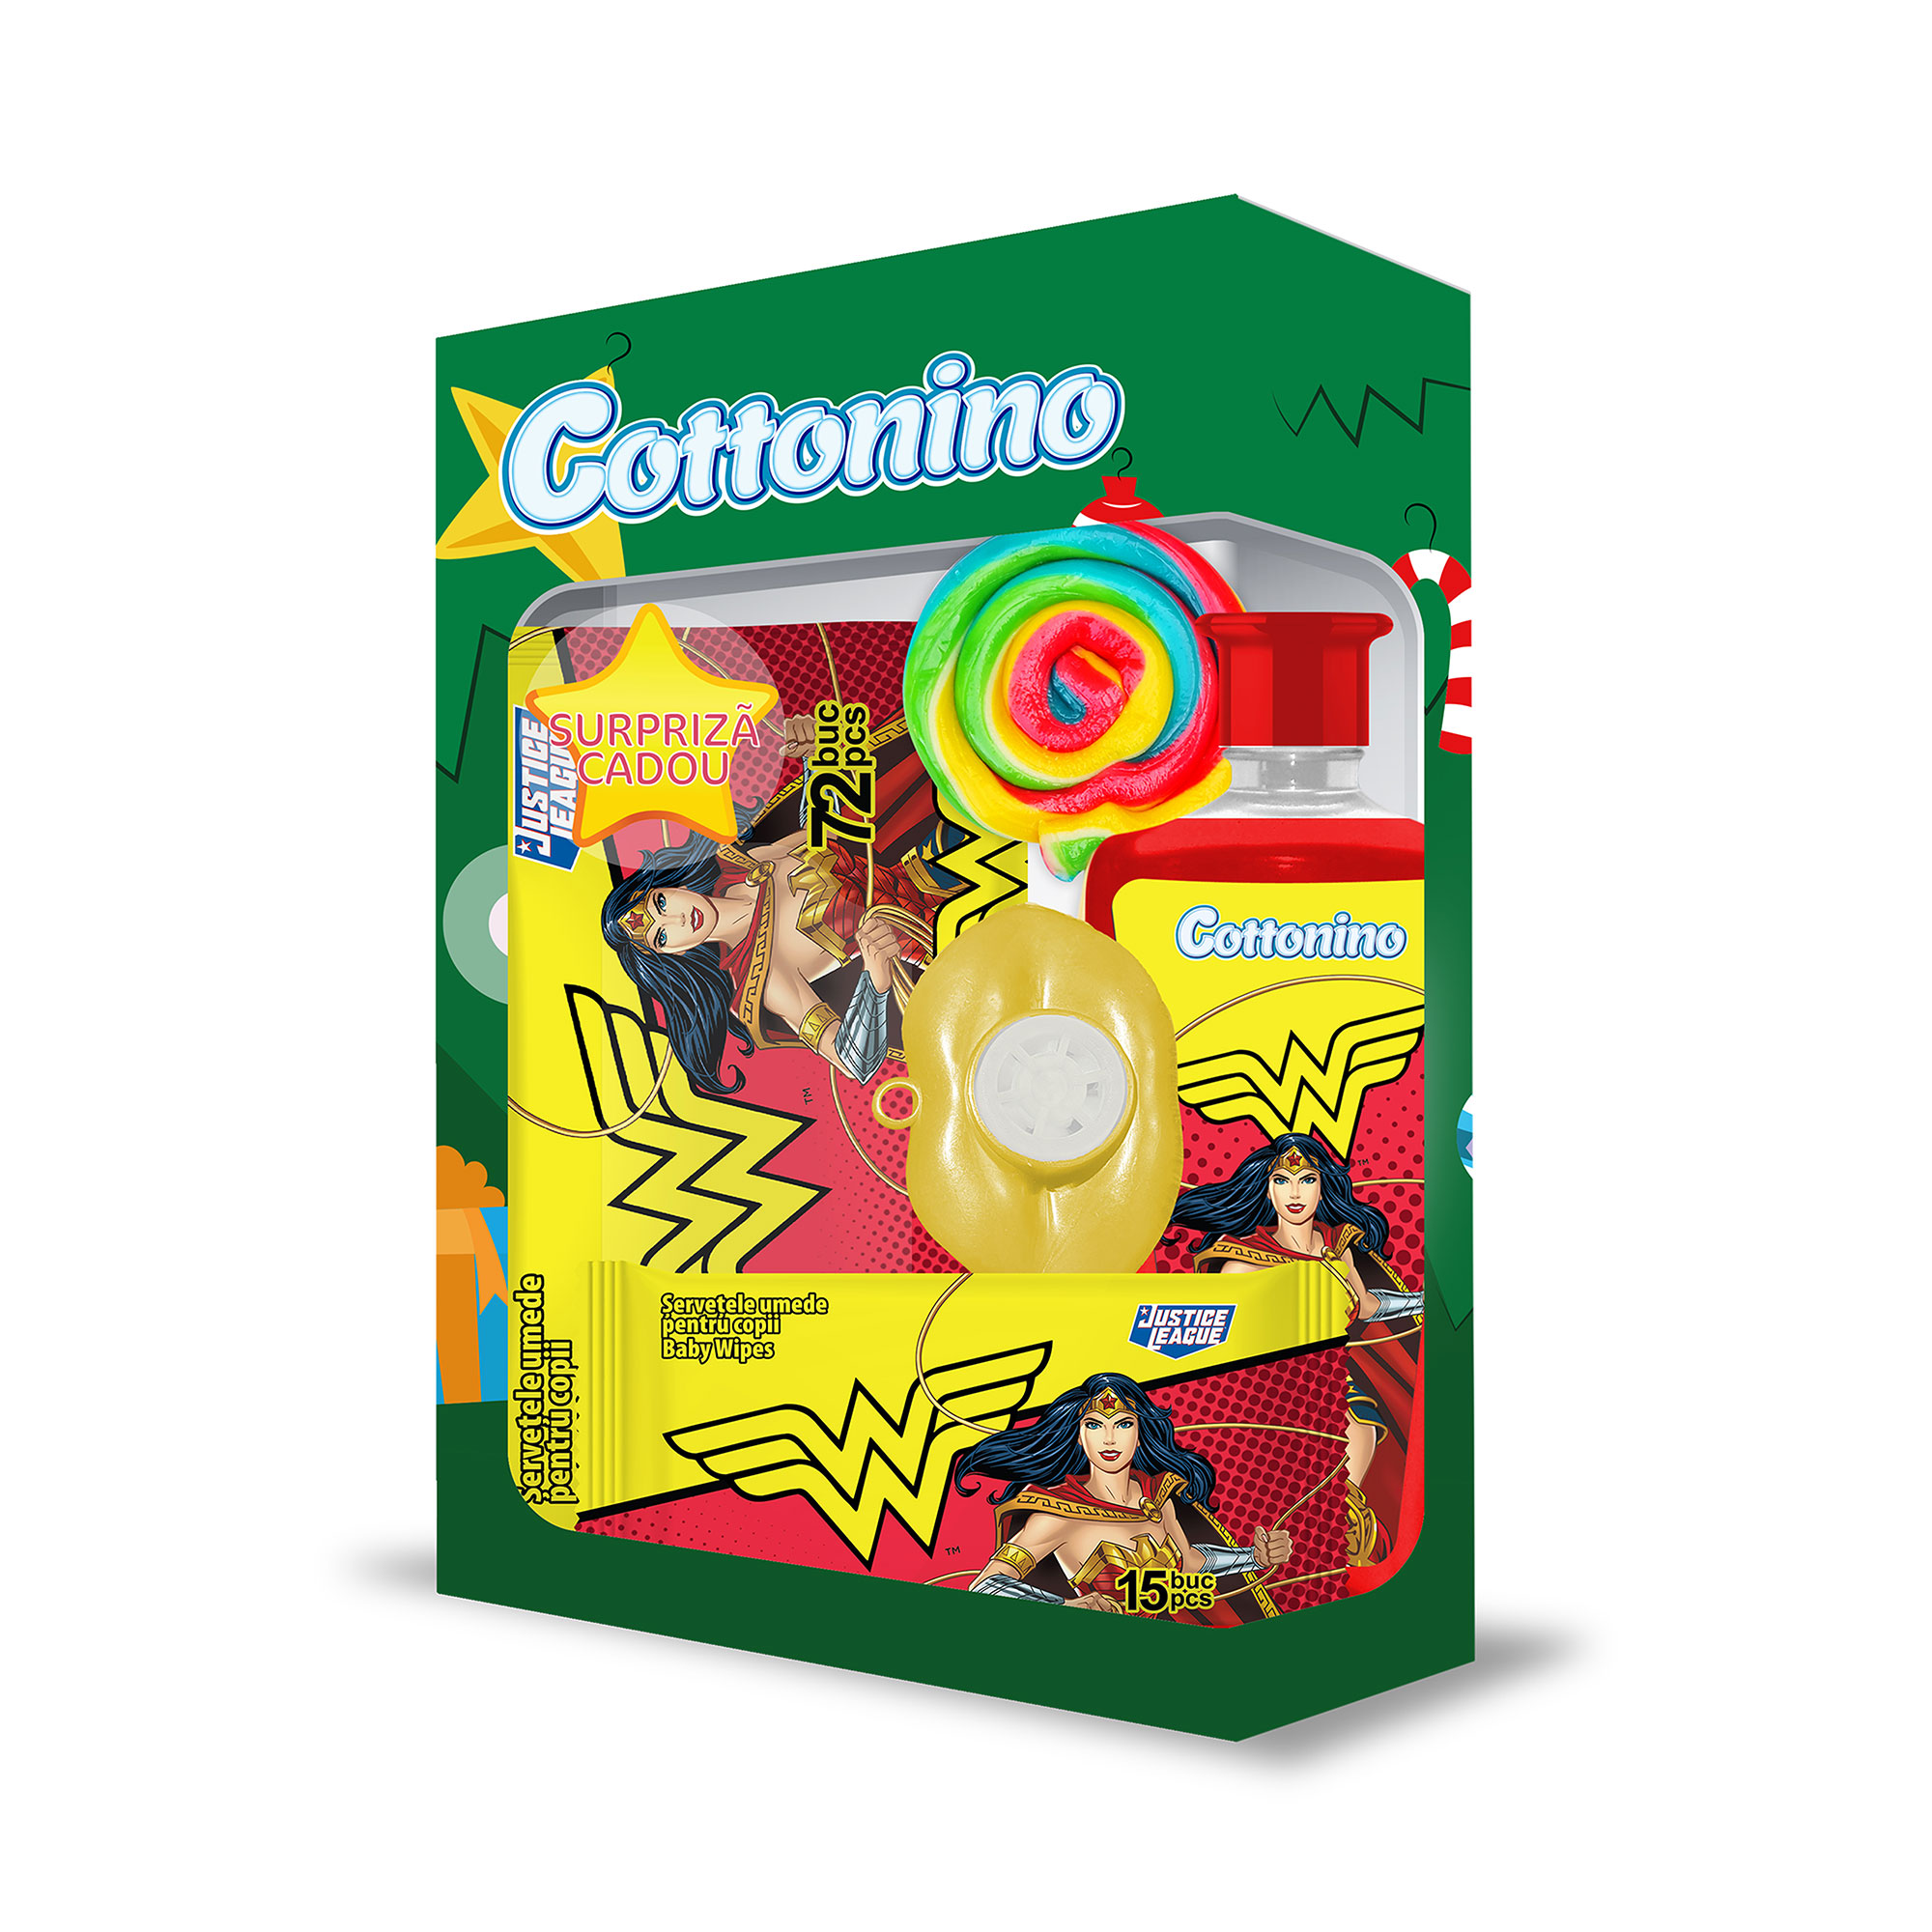 Cottonino Gift Box WONDER WOMEN